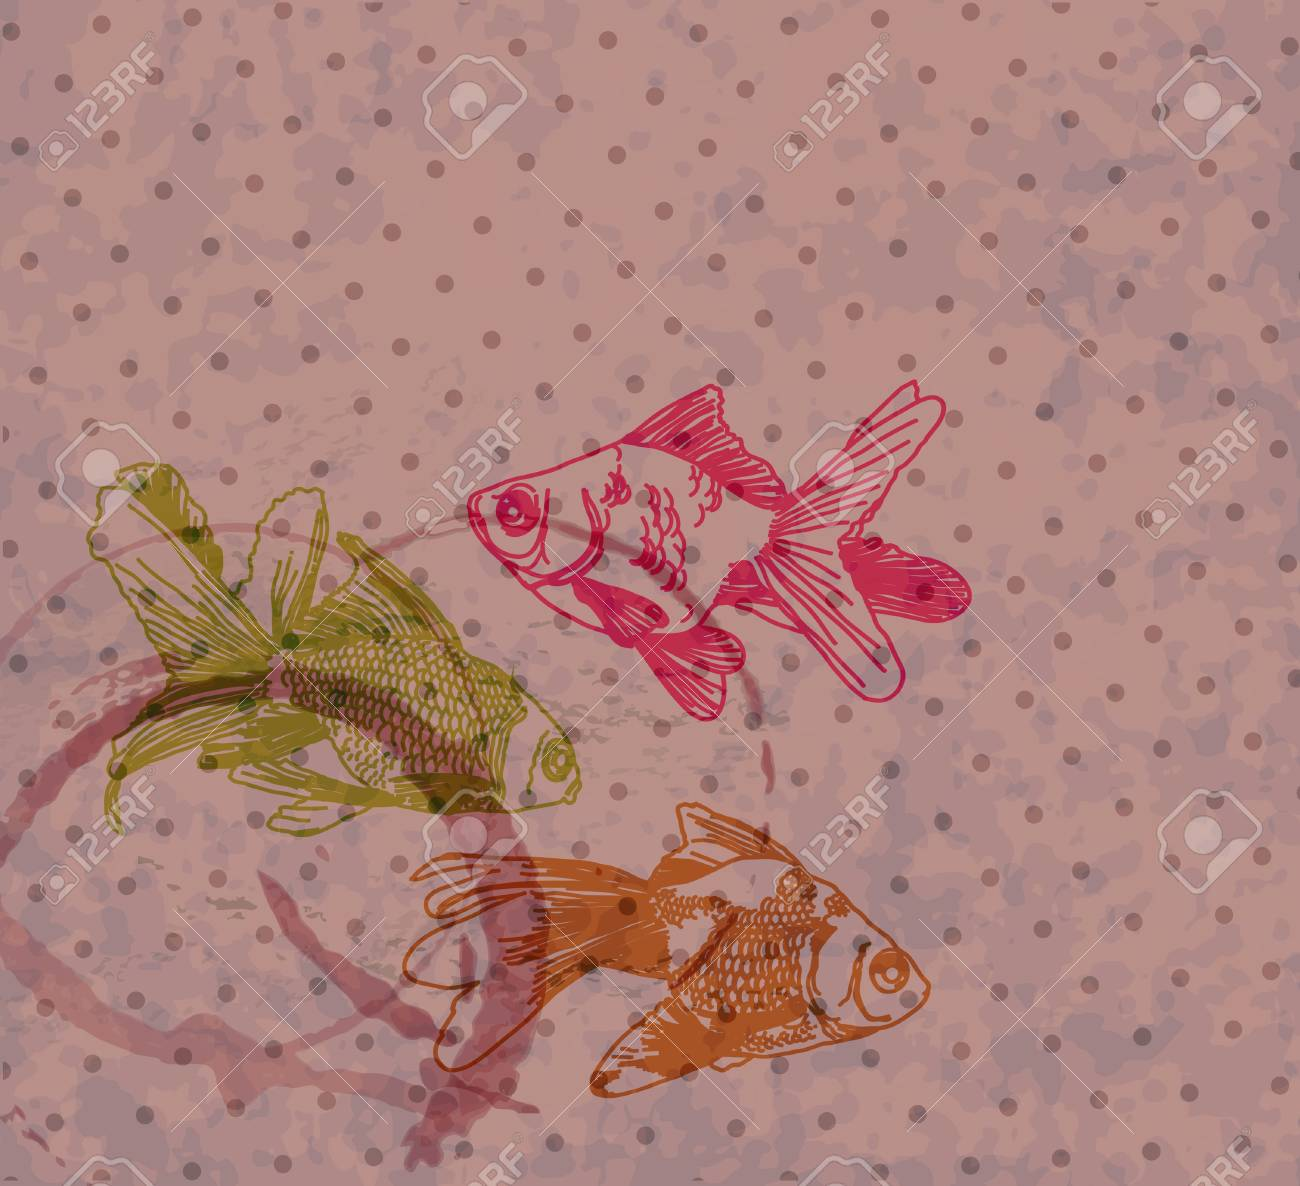 Grunge background with Hand drawing gold fishes, illustration Stock Vector - 13912030